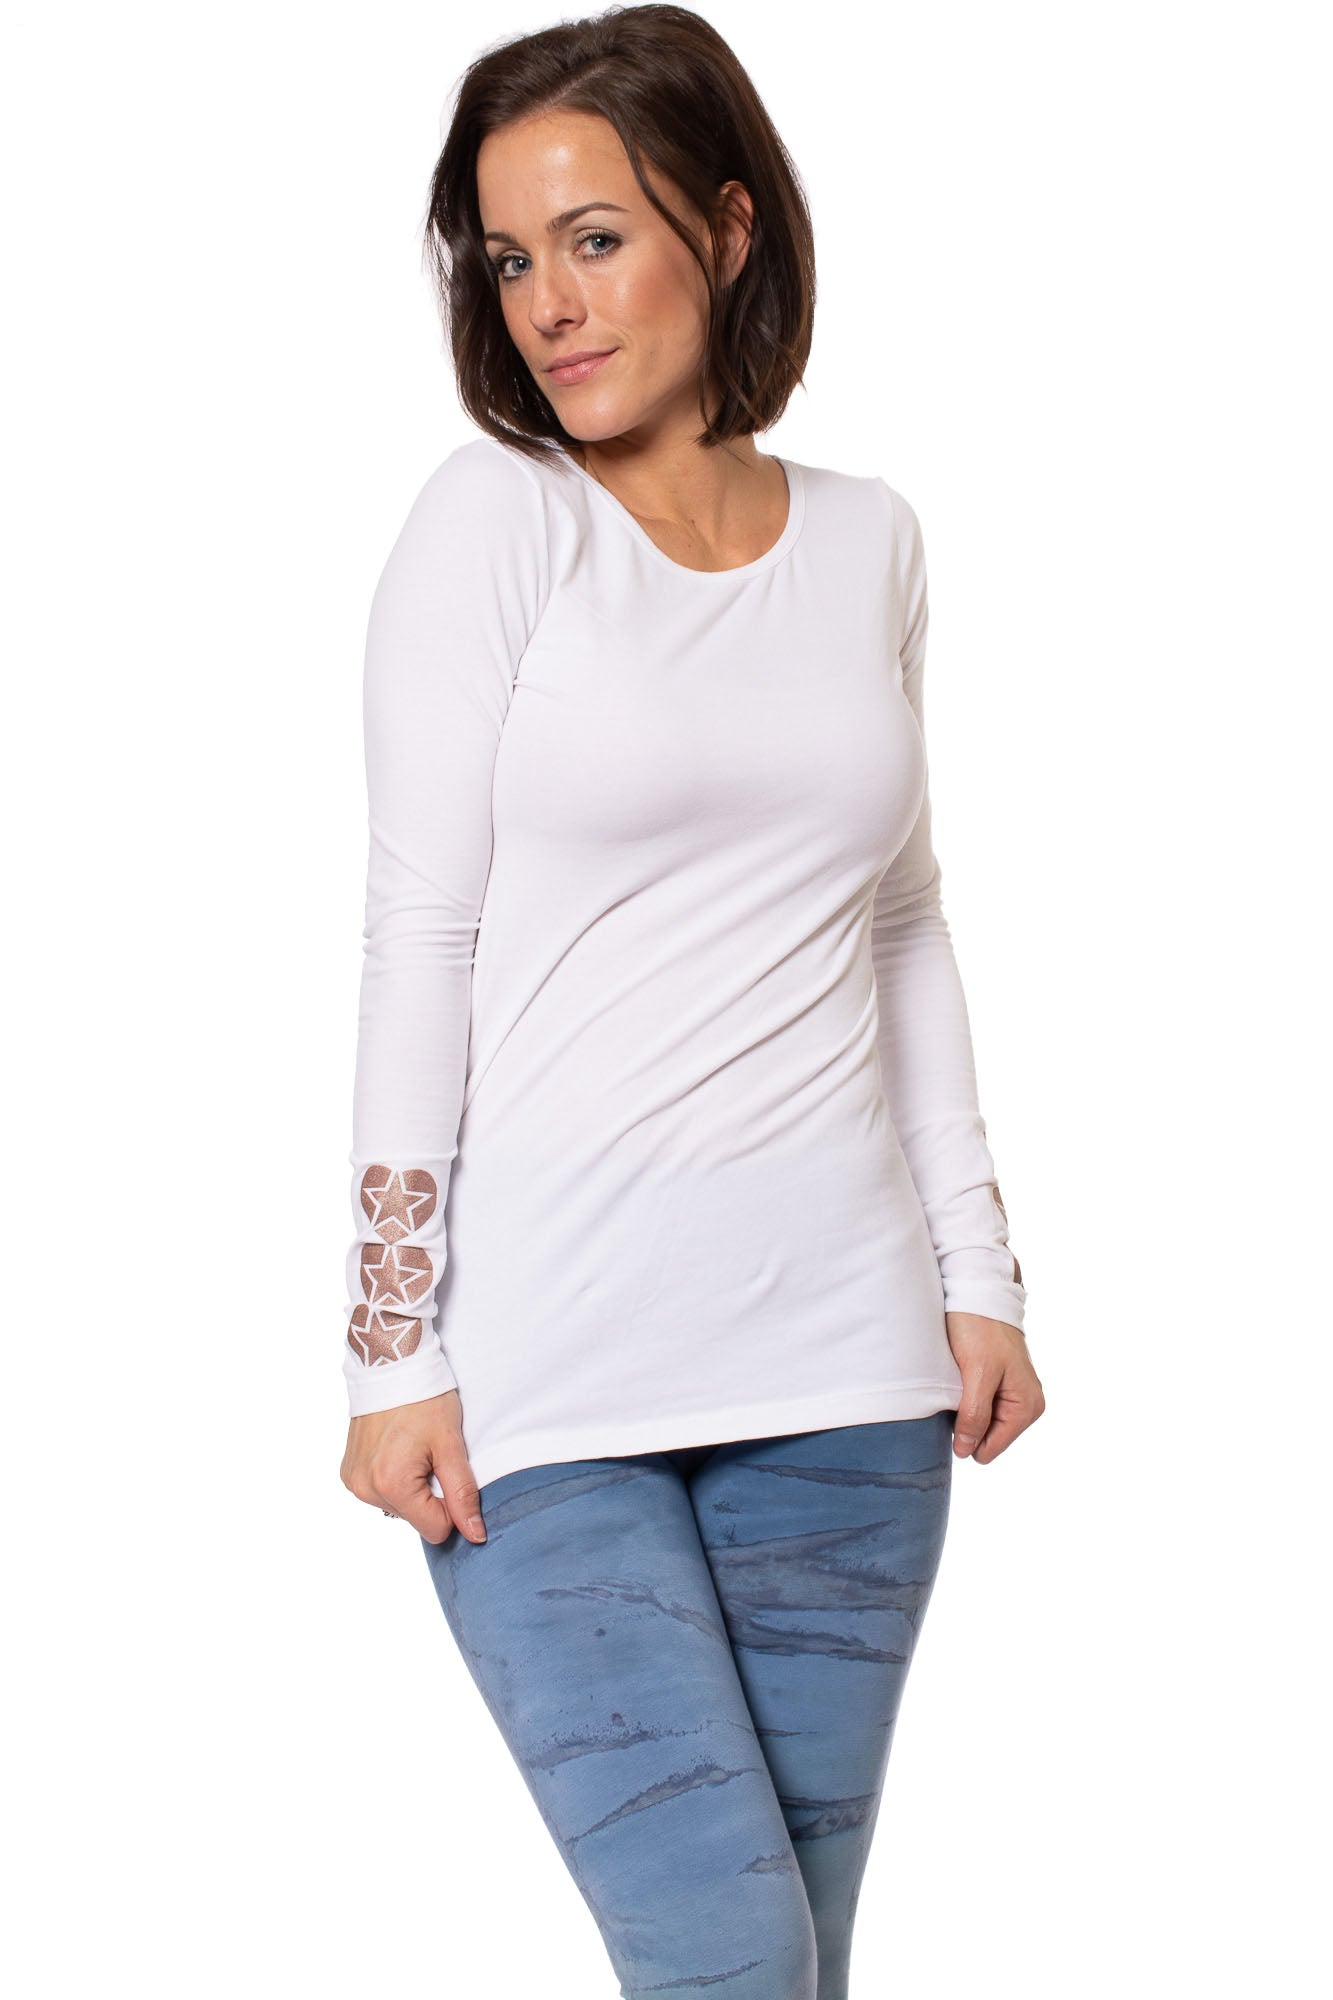 Hard Tail Forever - Supplex Lycra Long Sleeve Scoop Tee  (SL-69-907, White w/Rose Gold Stars)